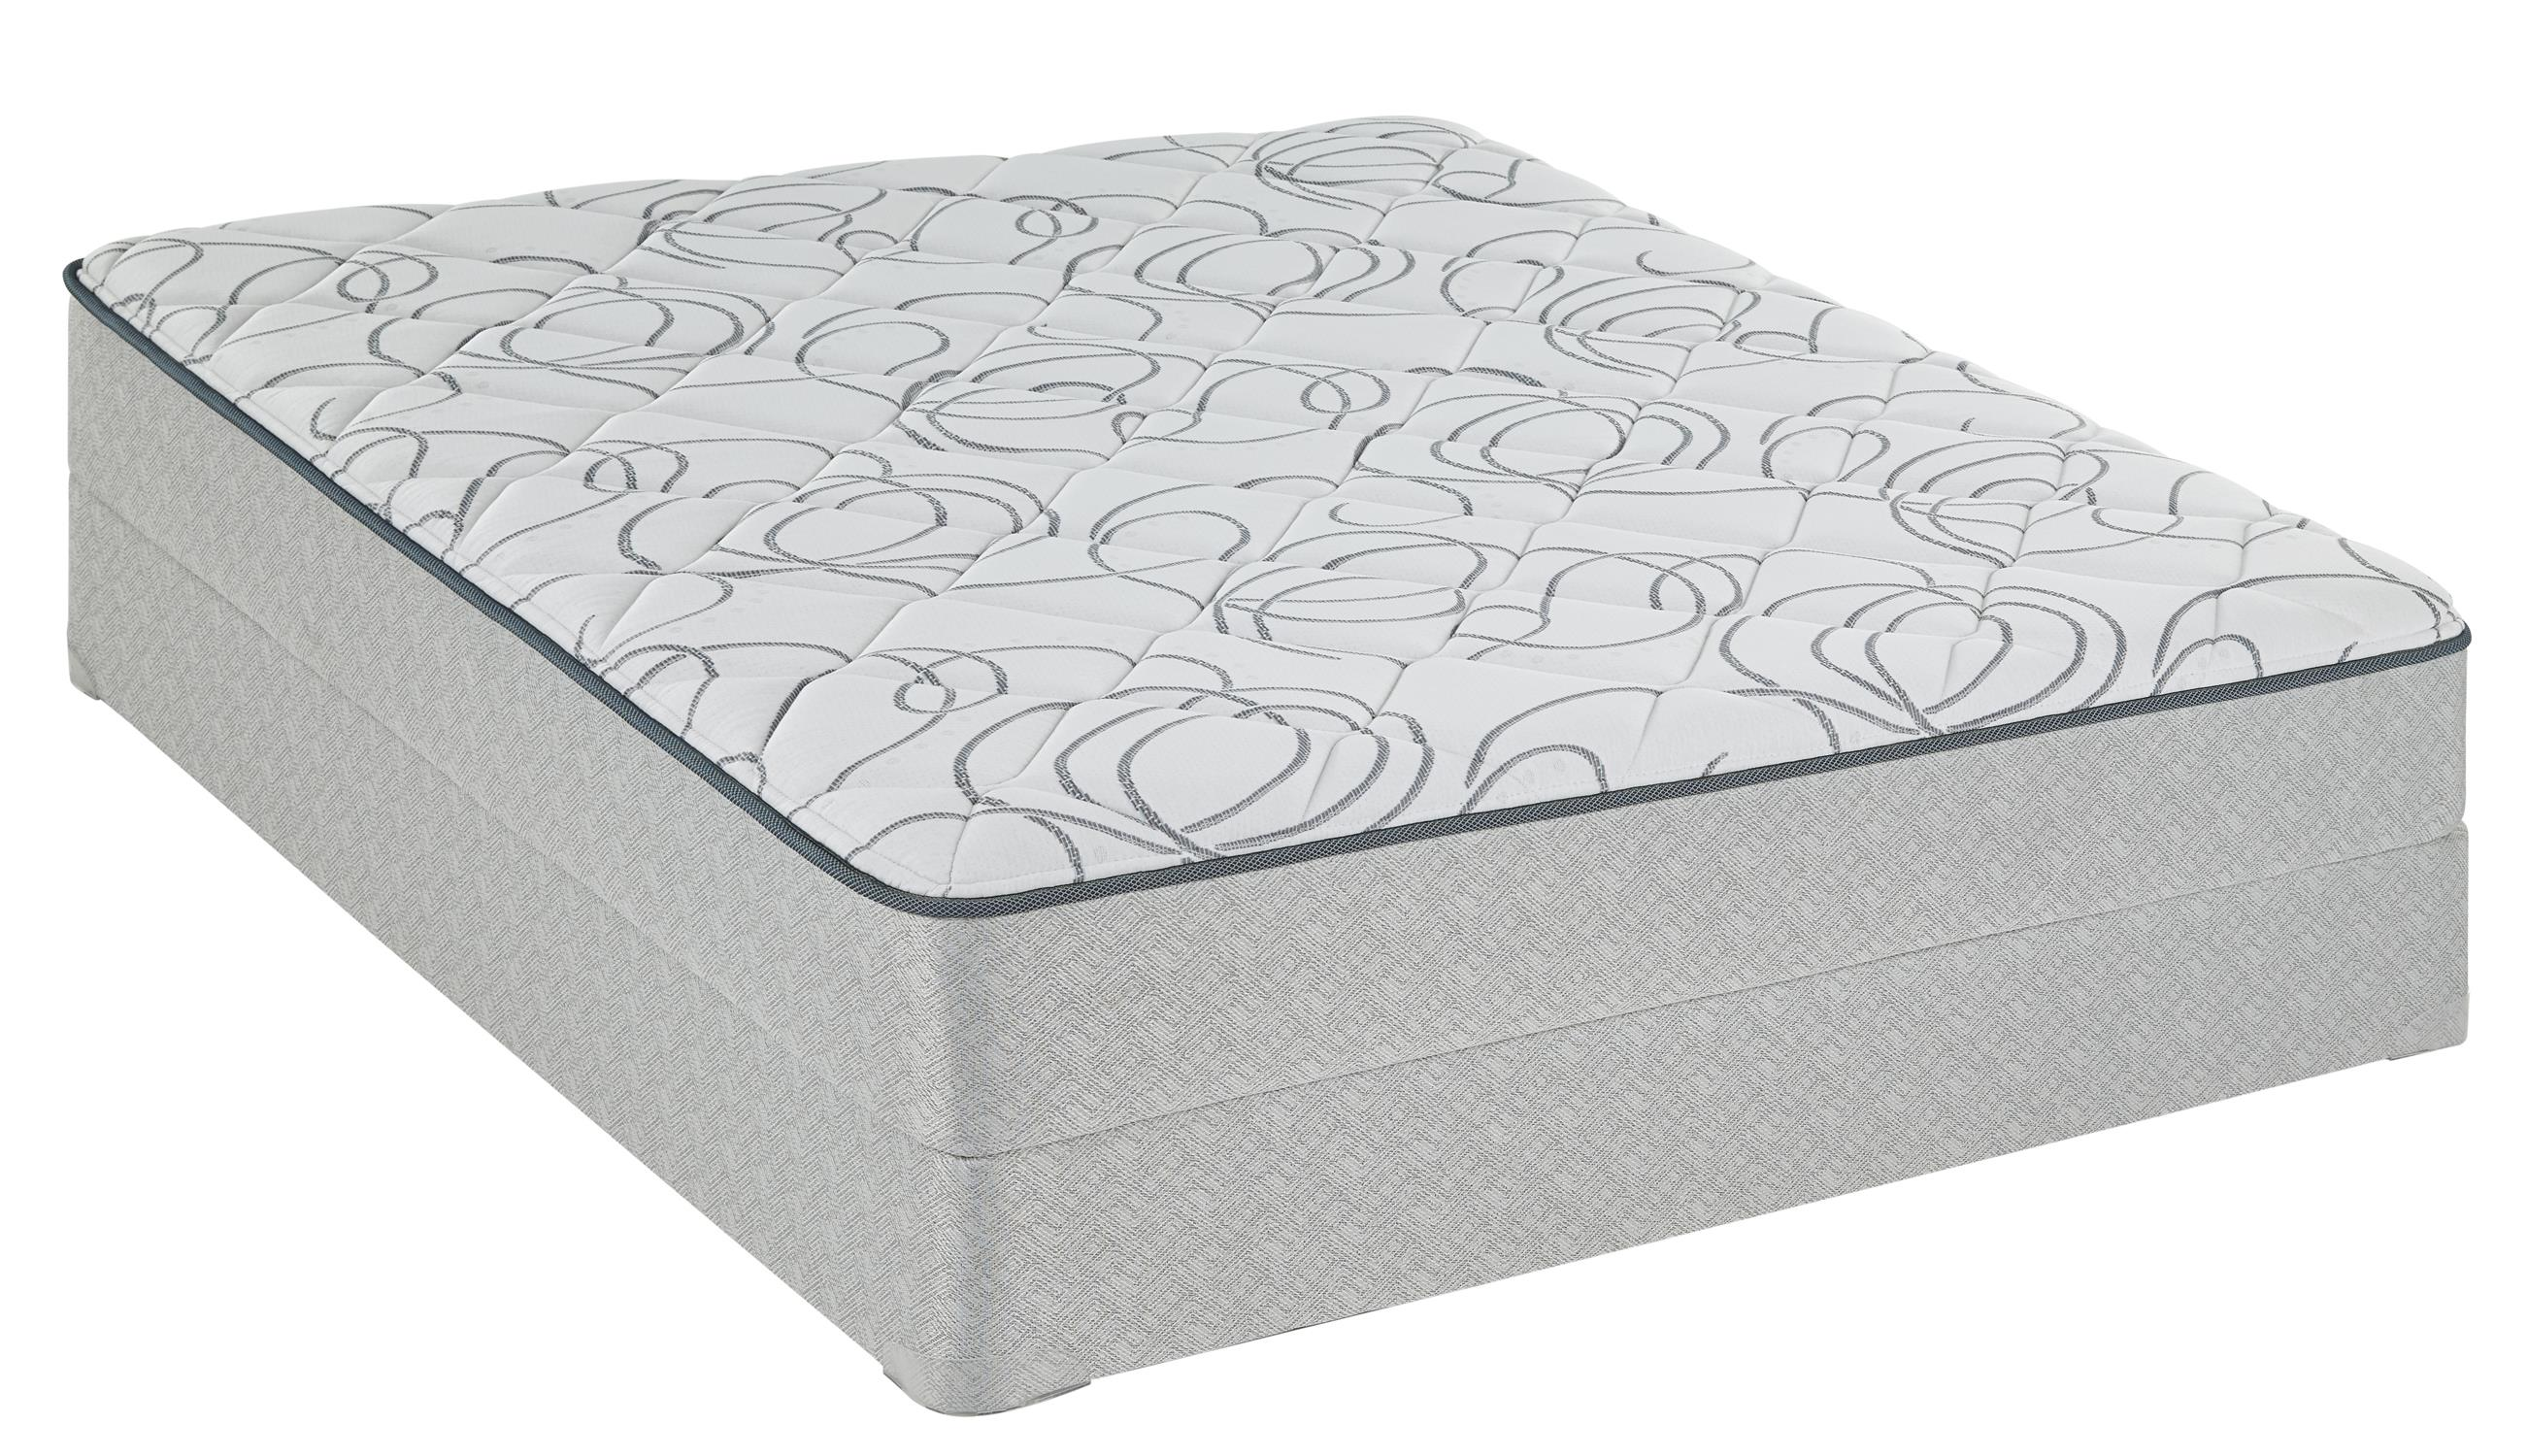 Sealy Ironbridge Twin Plush Mattress Low Profile Set - Item Number: PlushTT-T+SBLPbox-T